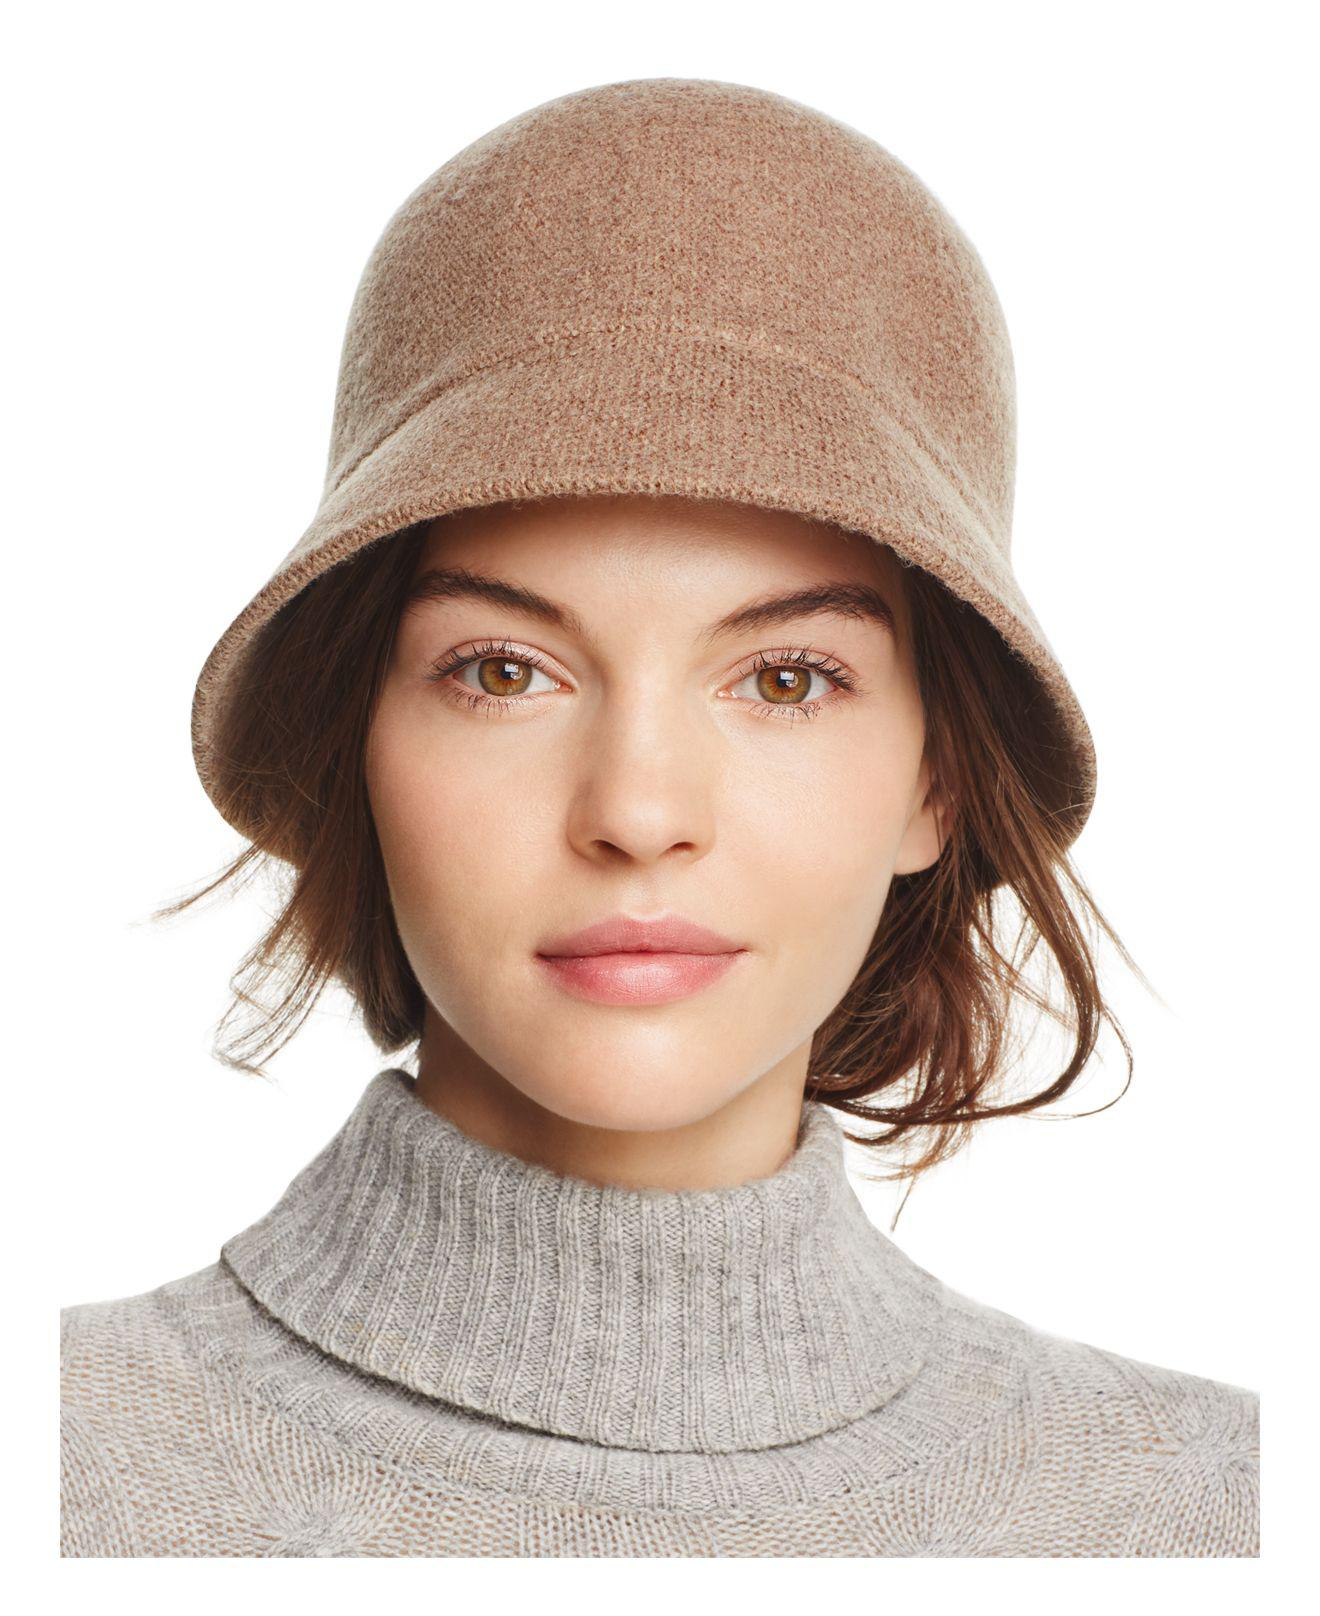 2a404a54c August Hat Company Melton Cloche Hat in Brown - Lyst